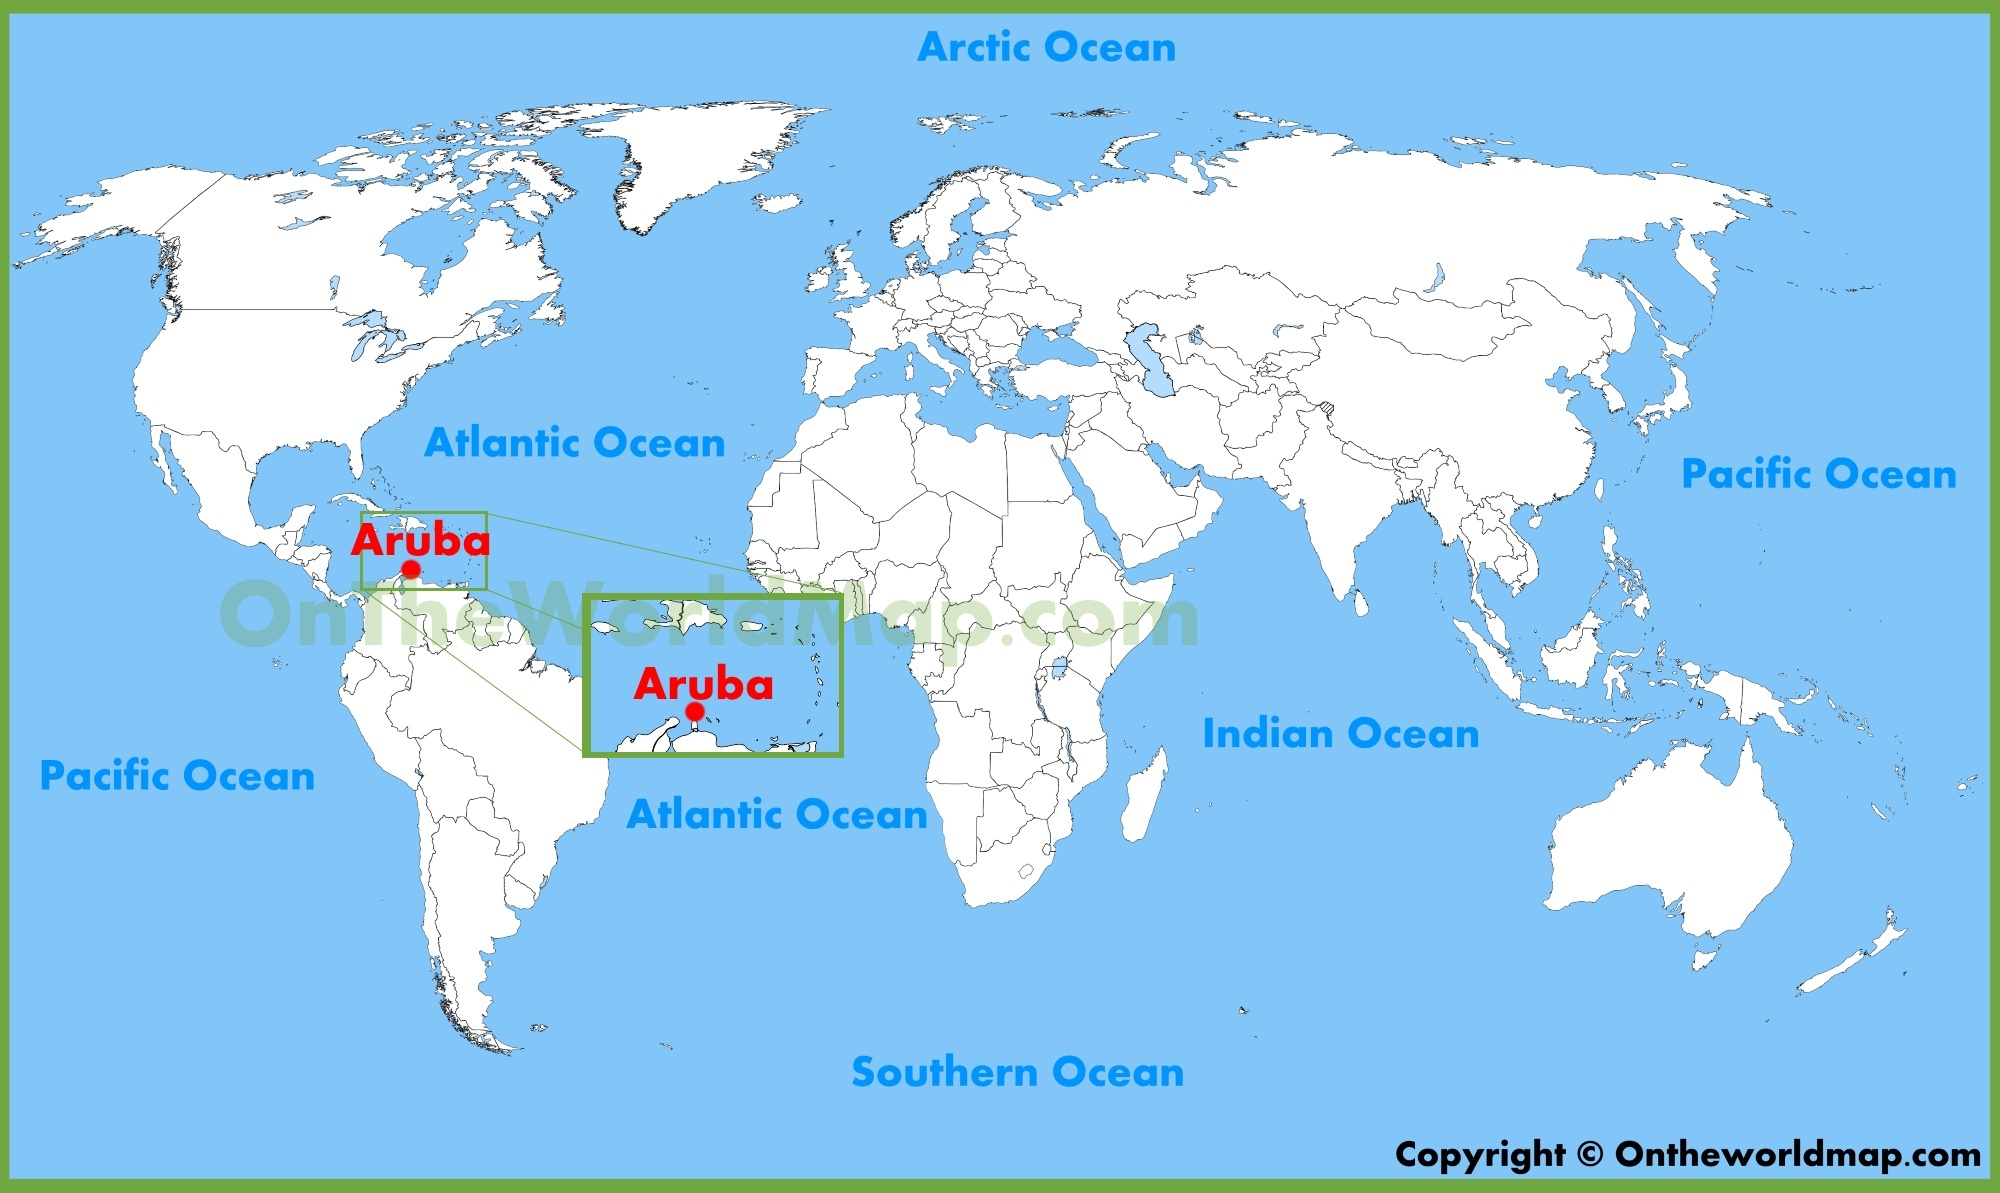 Aruba location on the World Map